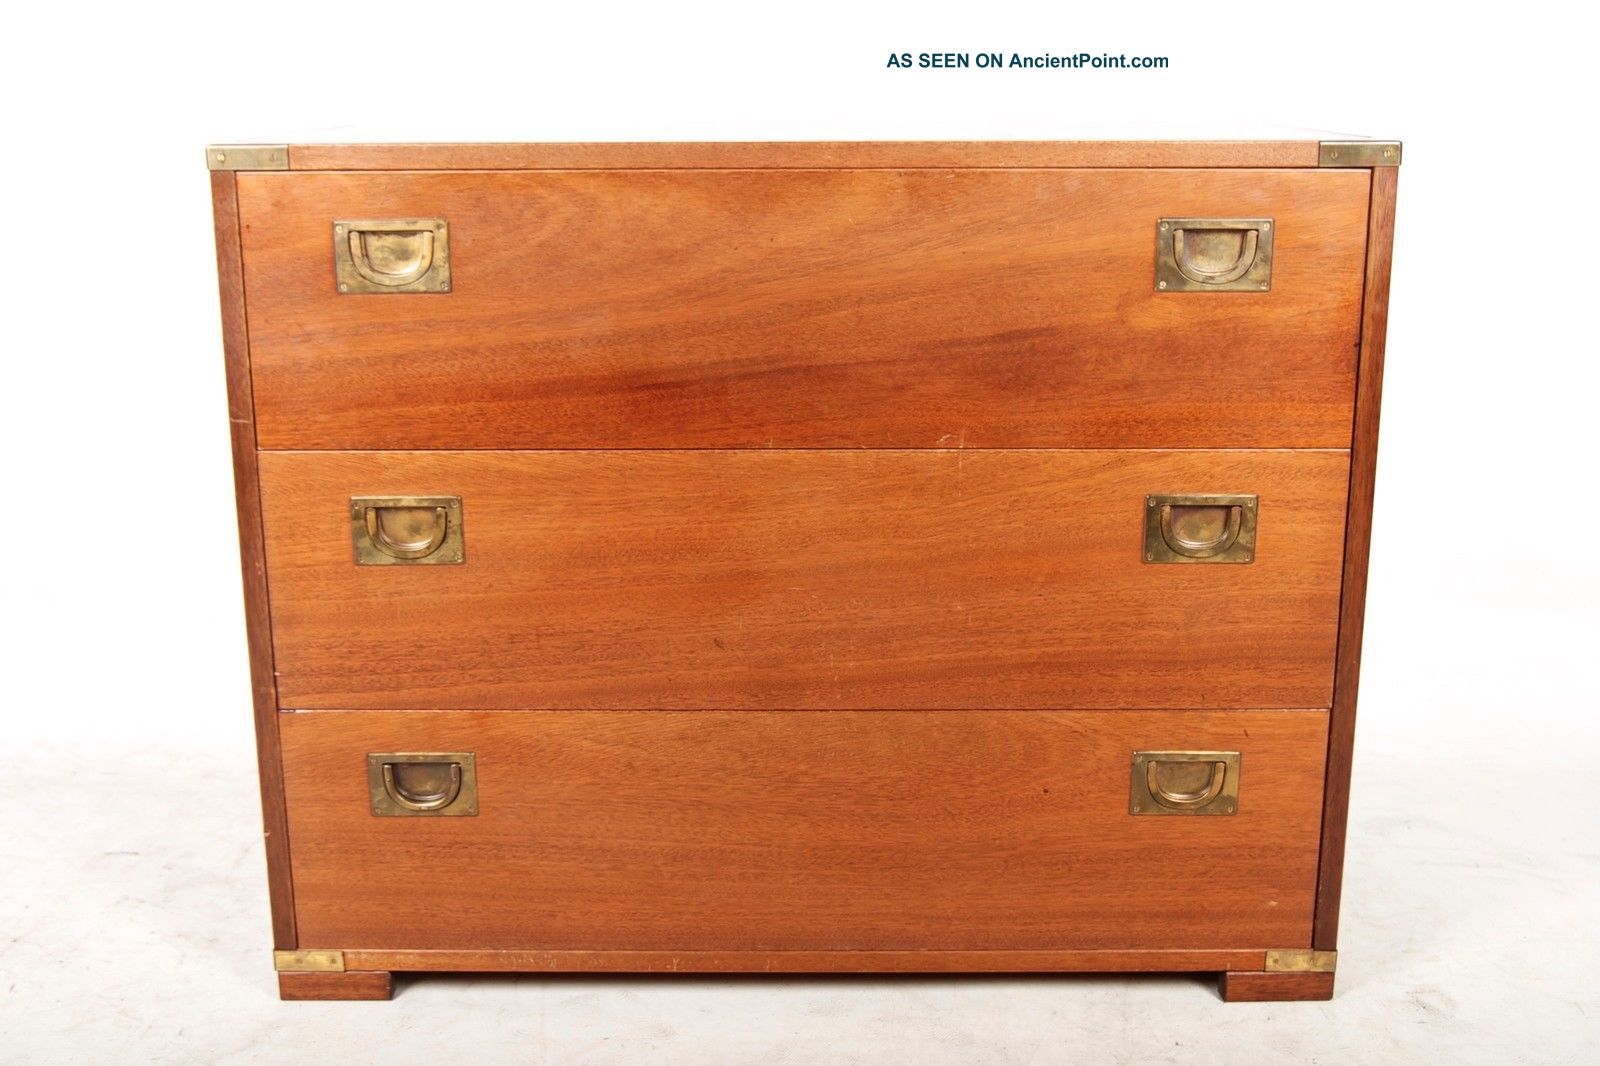 Vintage Chest Of Drawers Cabinet Mahogany Brass Campaign Style 20th Century photo